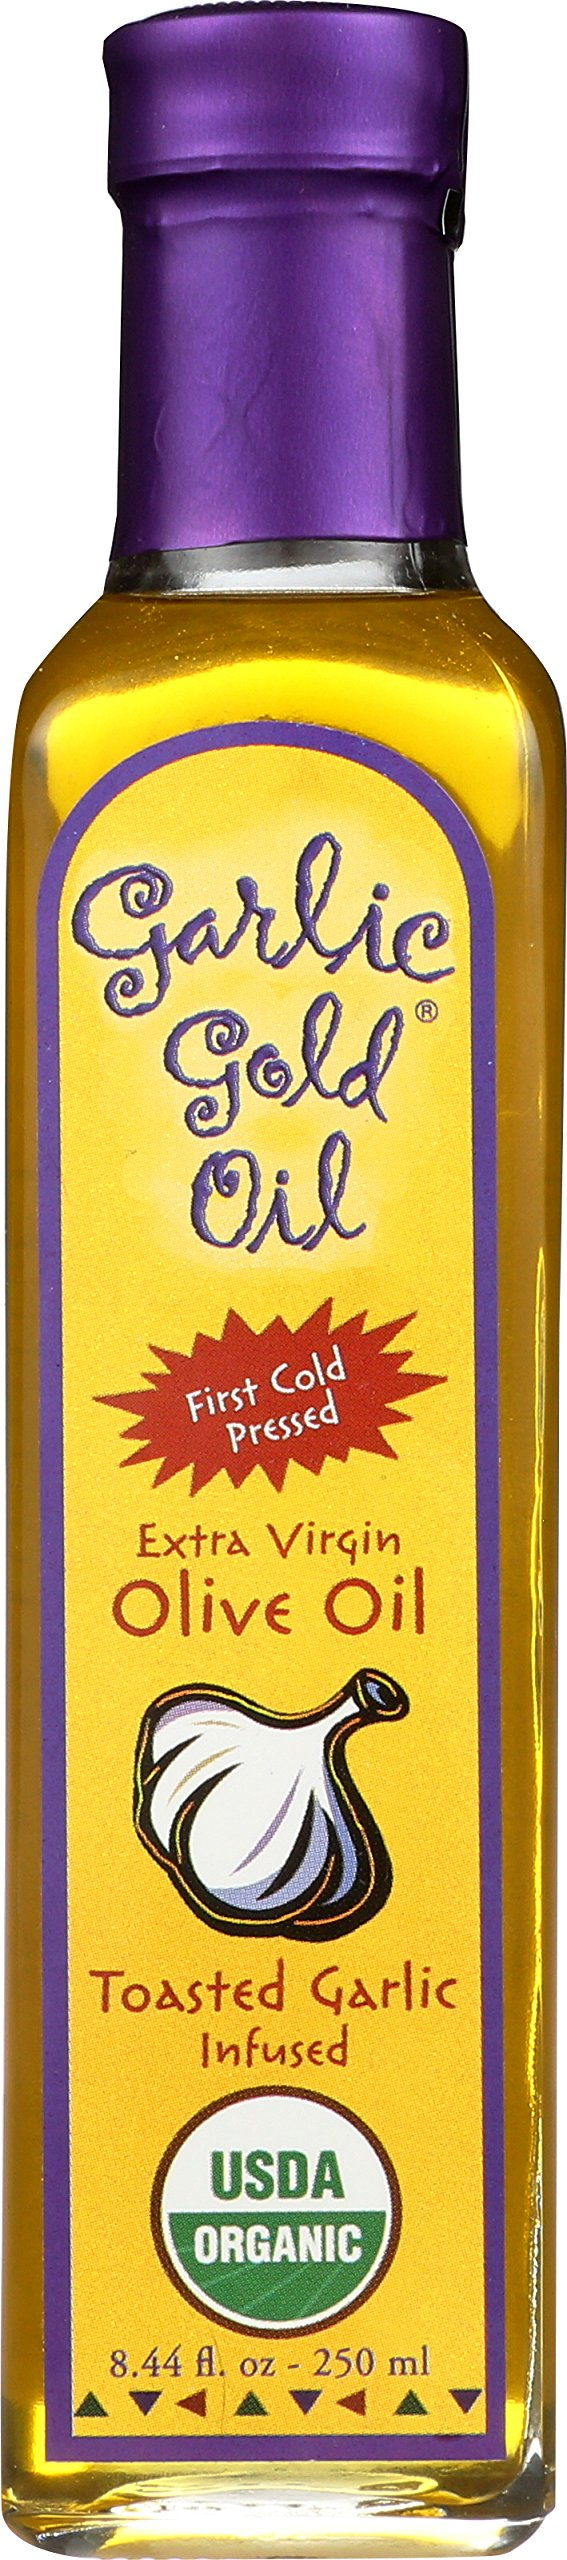 USDA Certified Organic Extra Virgin Olive Oil Infused with toasted Garlic, Low FODMAP, Garlic Gold (8.44 fl oz)